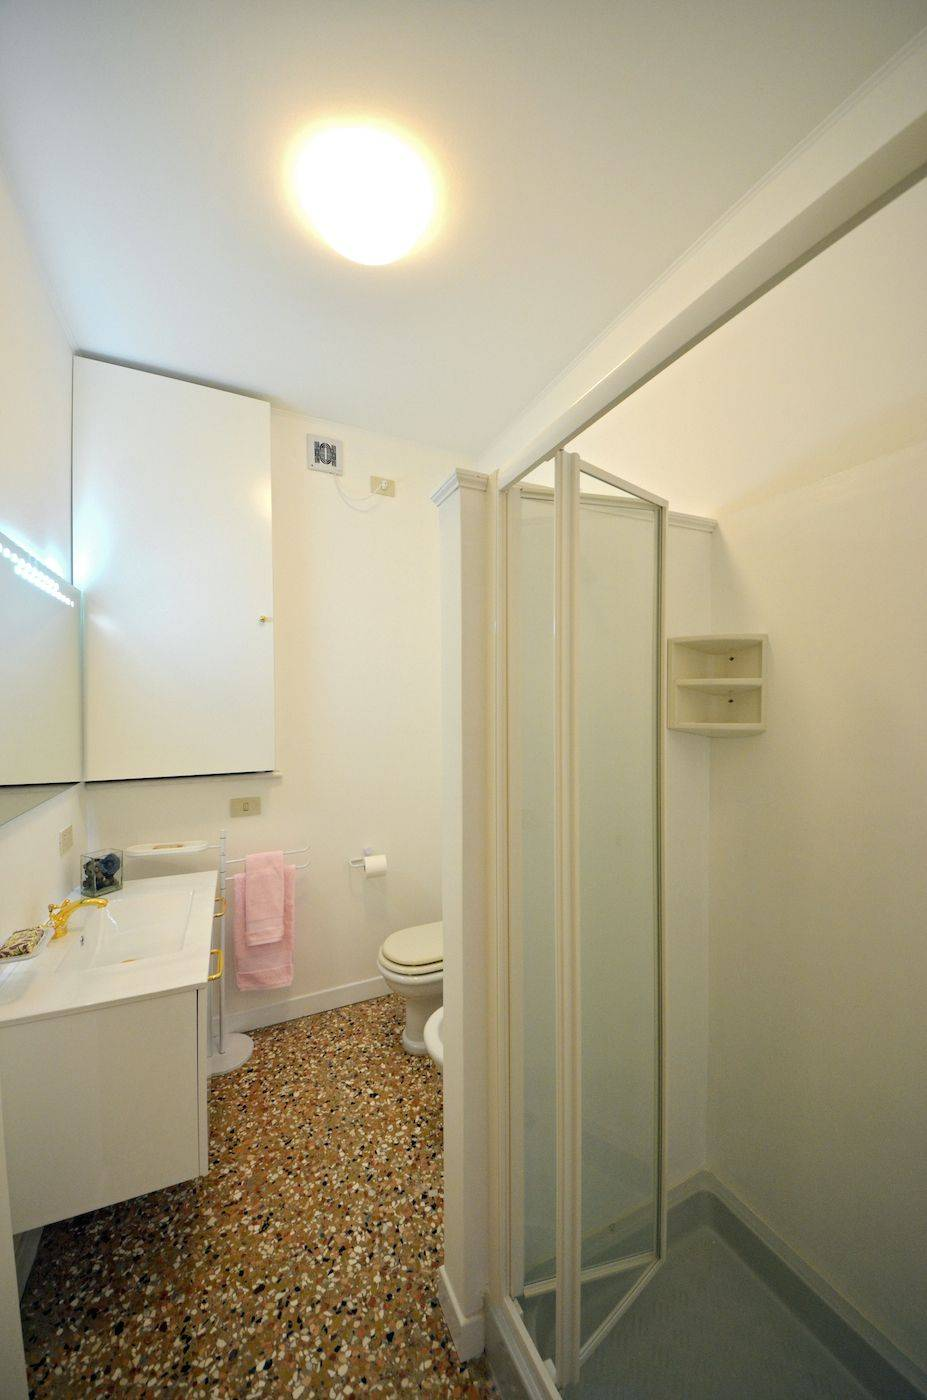 the newly renovated bathroom has a shower cabin